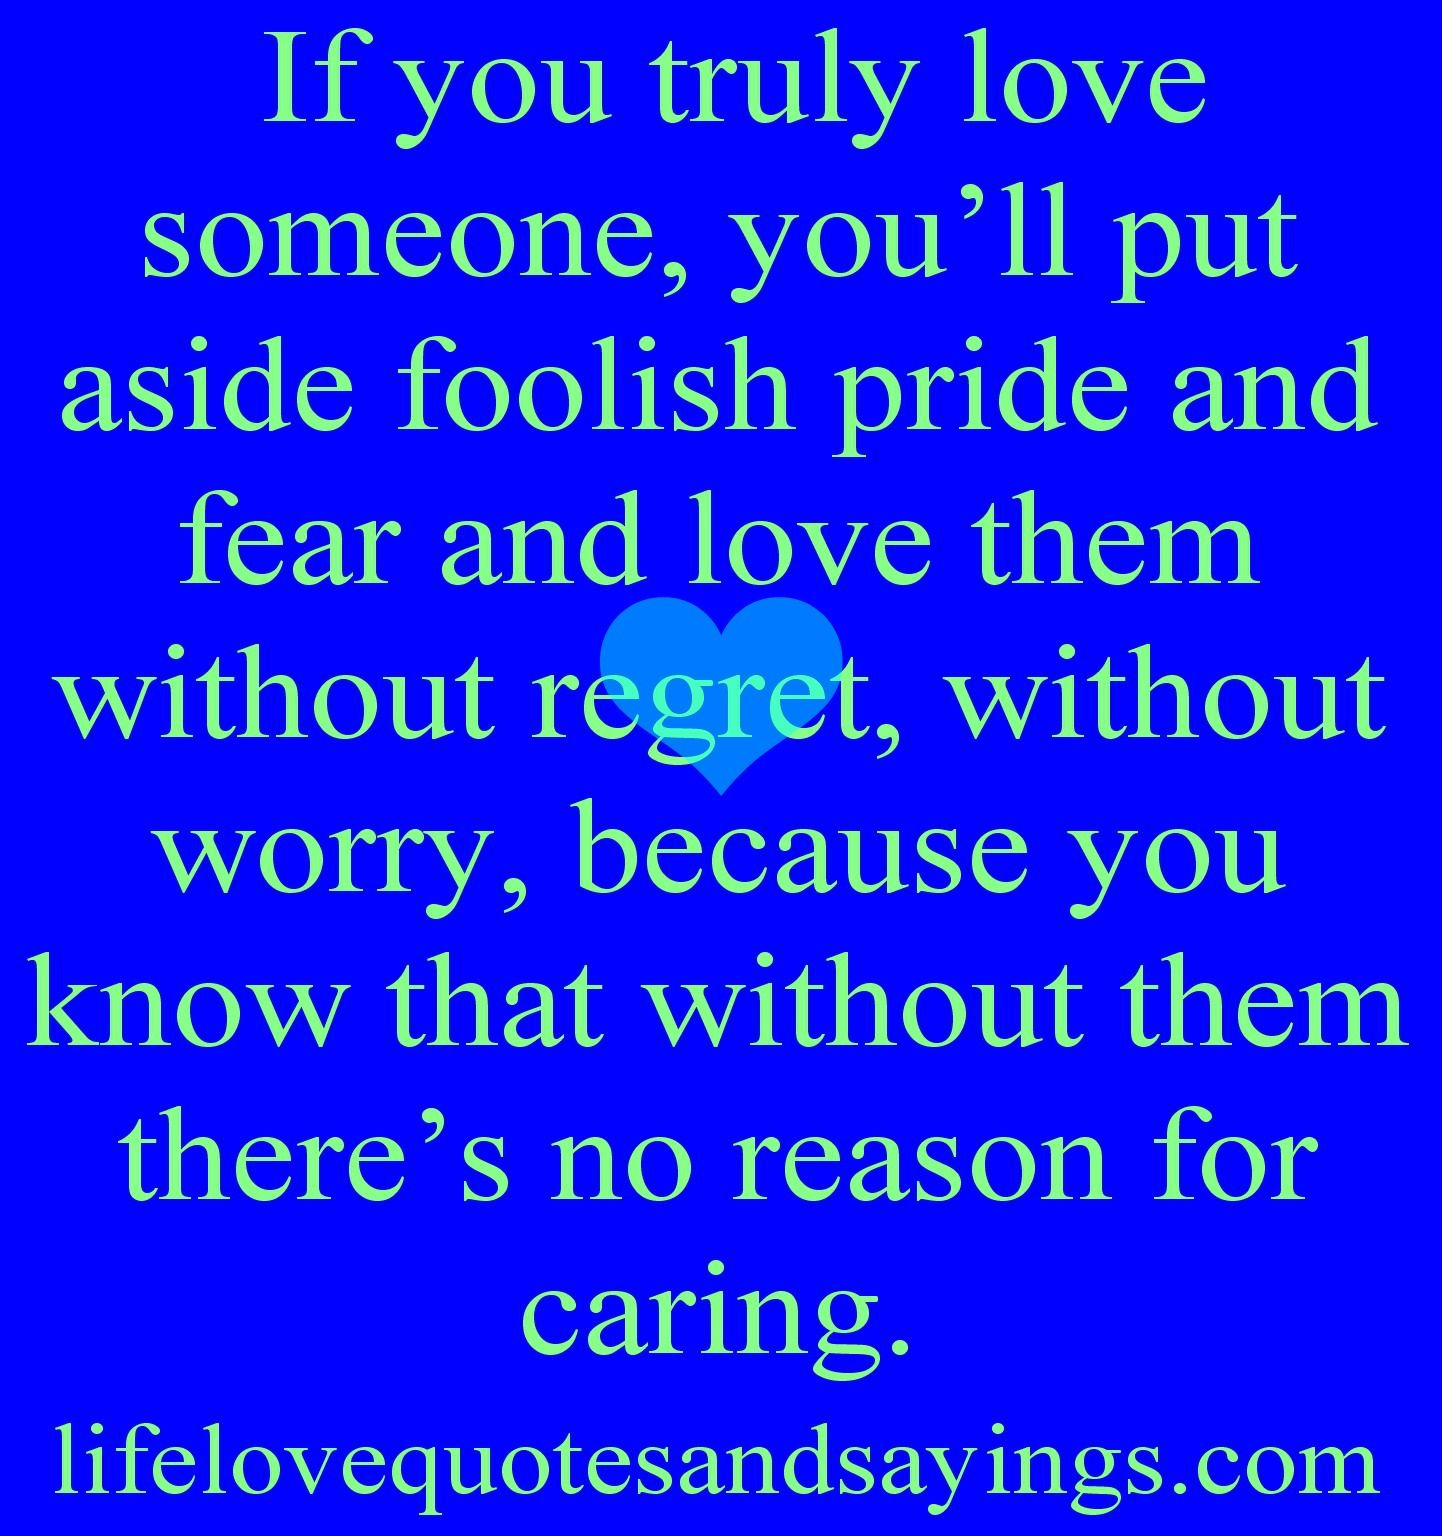 If You Truly Love Someone Youll Put Aside Foolish Pride And Fear